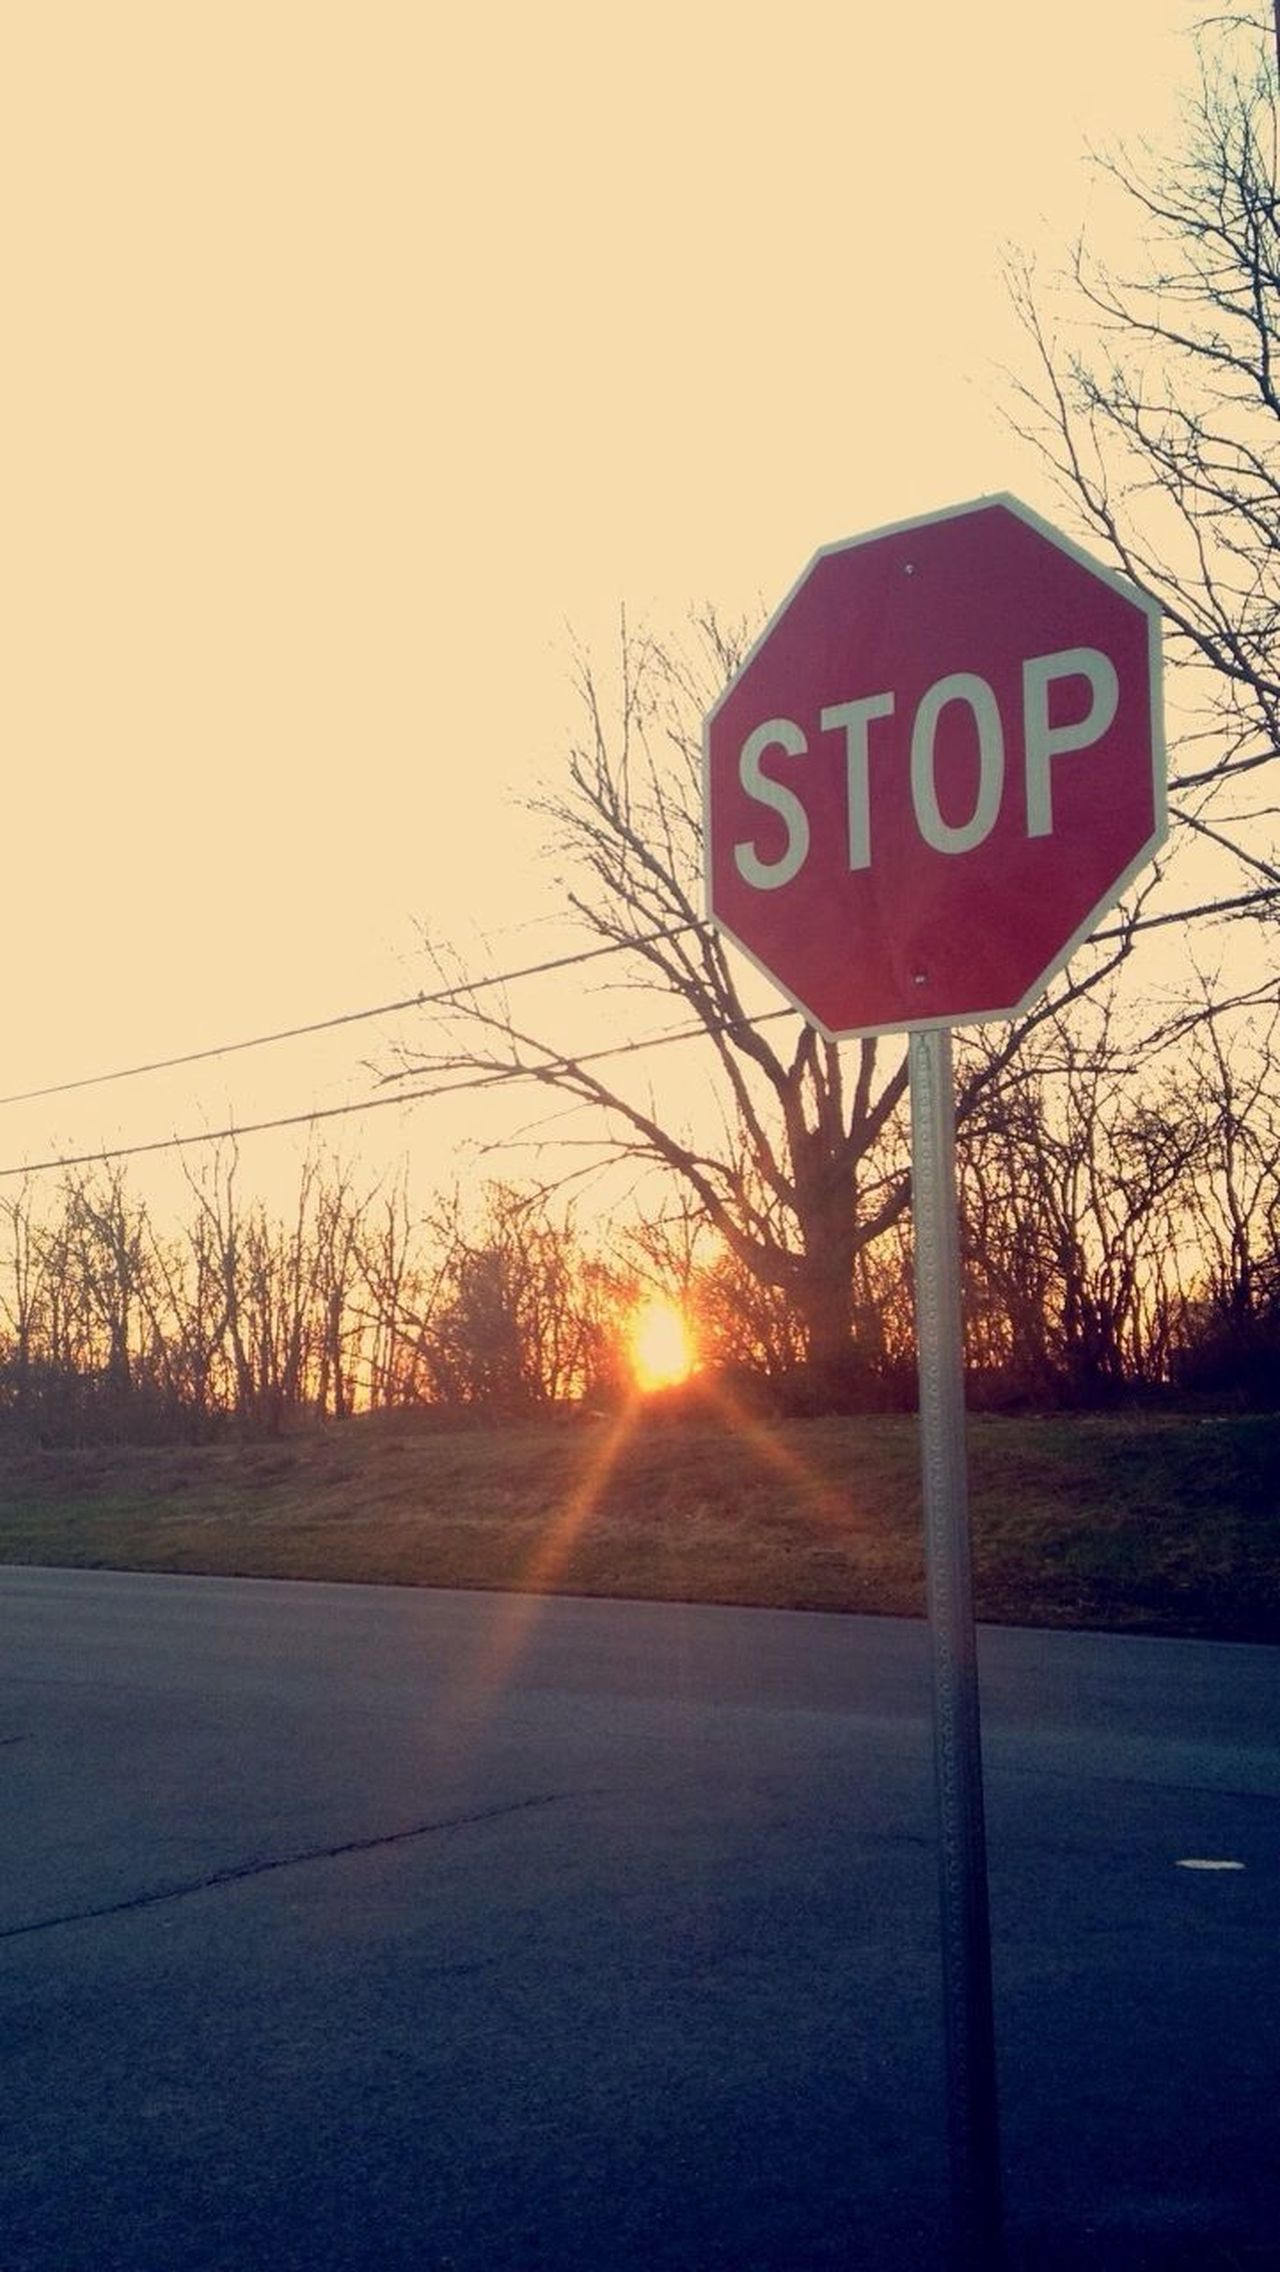 Road Sign Communication Text Stop Sign Road Sunlight No People Guidance Nature Tree Sky Outdoors Bare Tree Speed Limit Sign Day Beauty In Nature